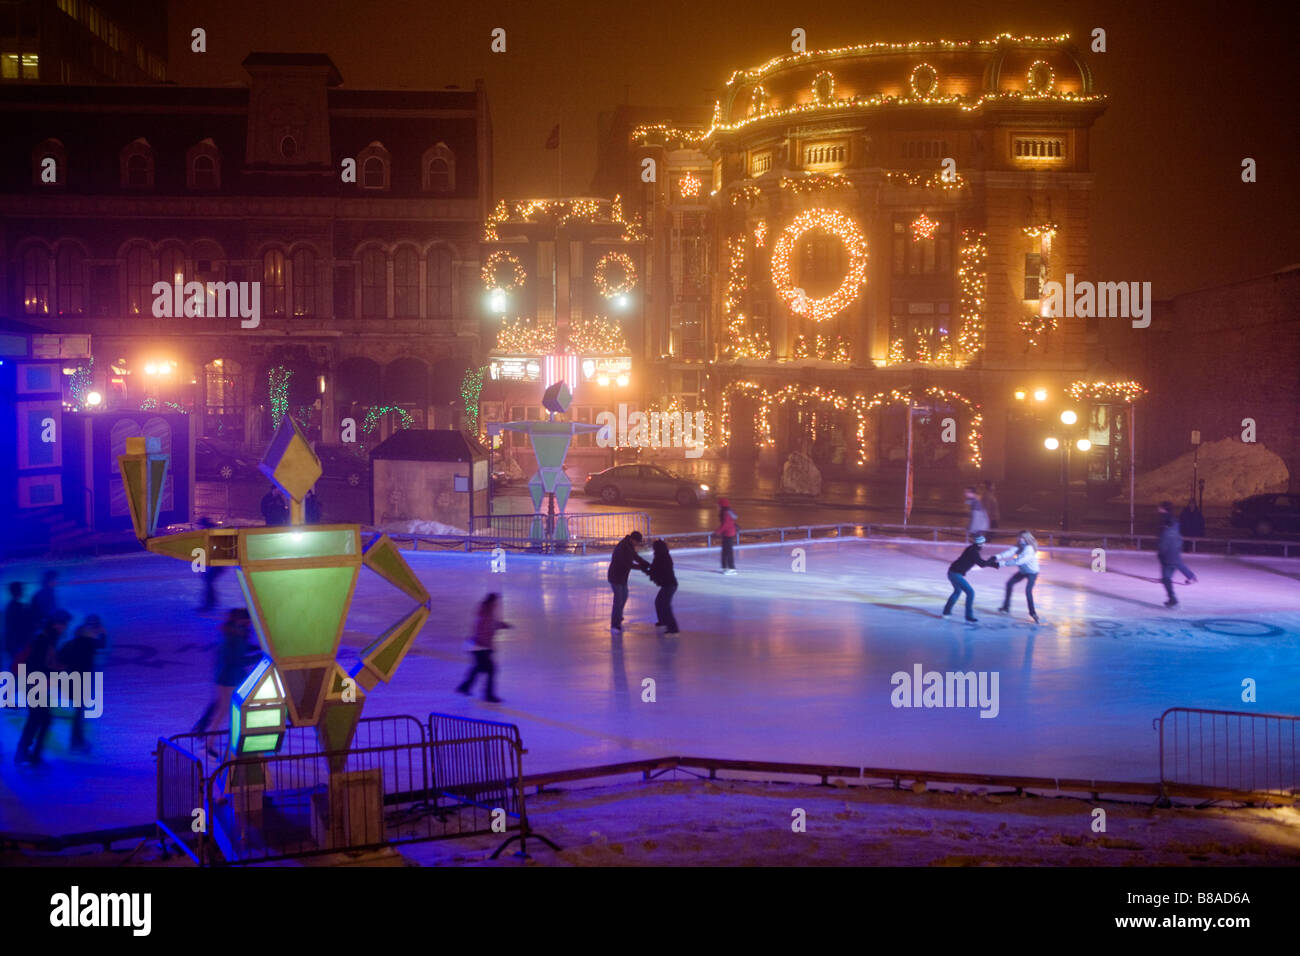 Ice skating at Place Hydro Quebec fronting Capitole de Cabaret Winter Carnival Quebec City Canada - Stock Image